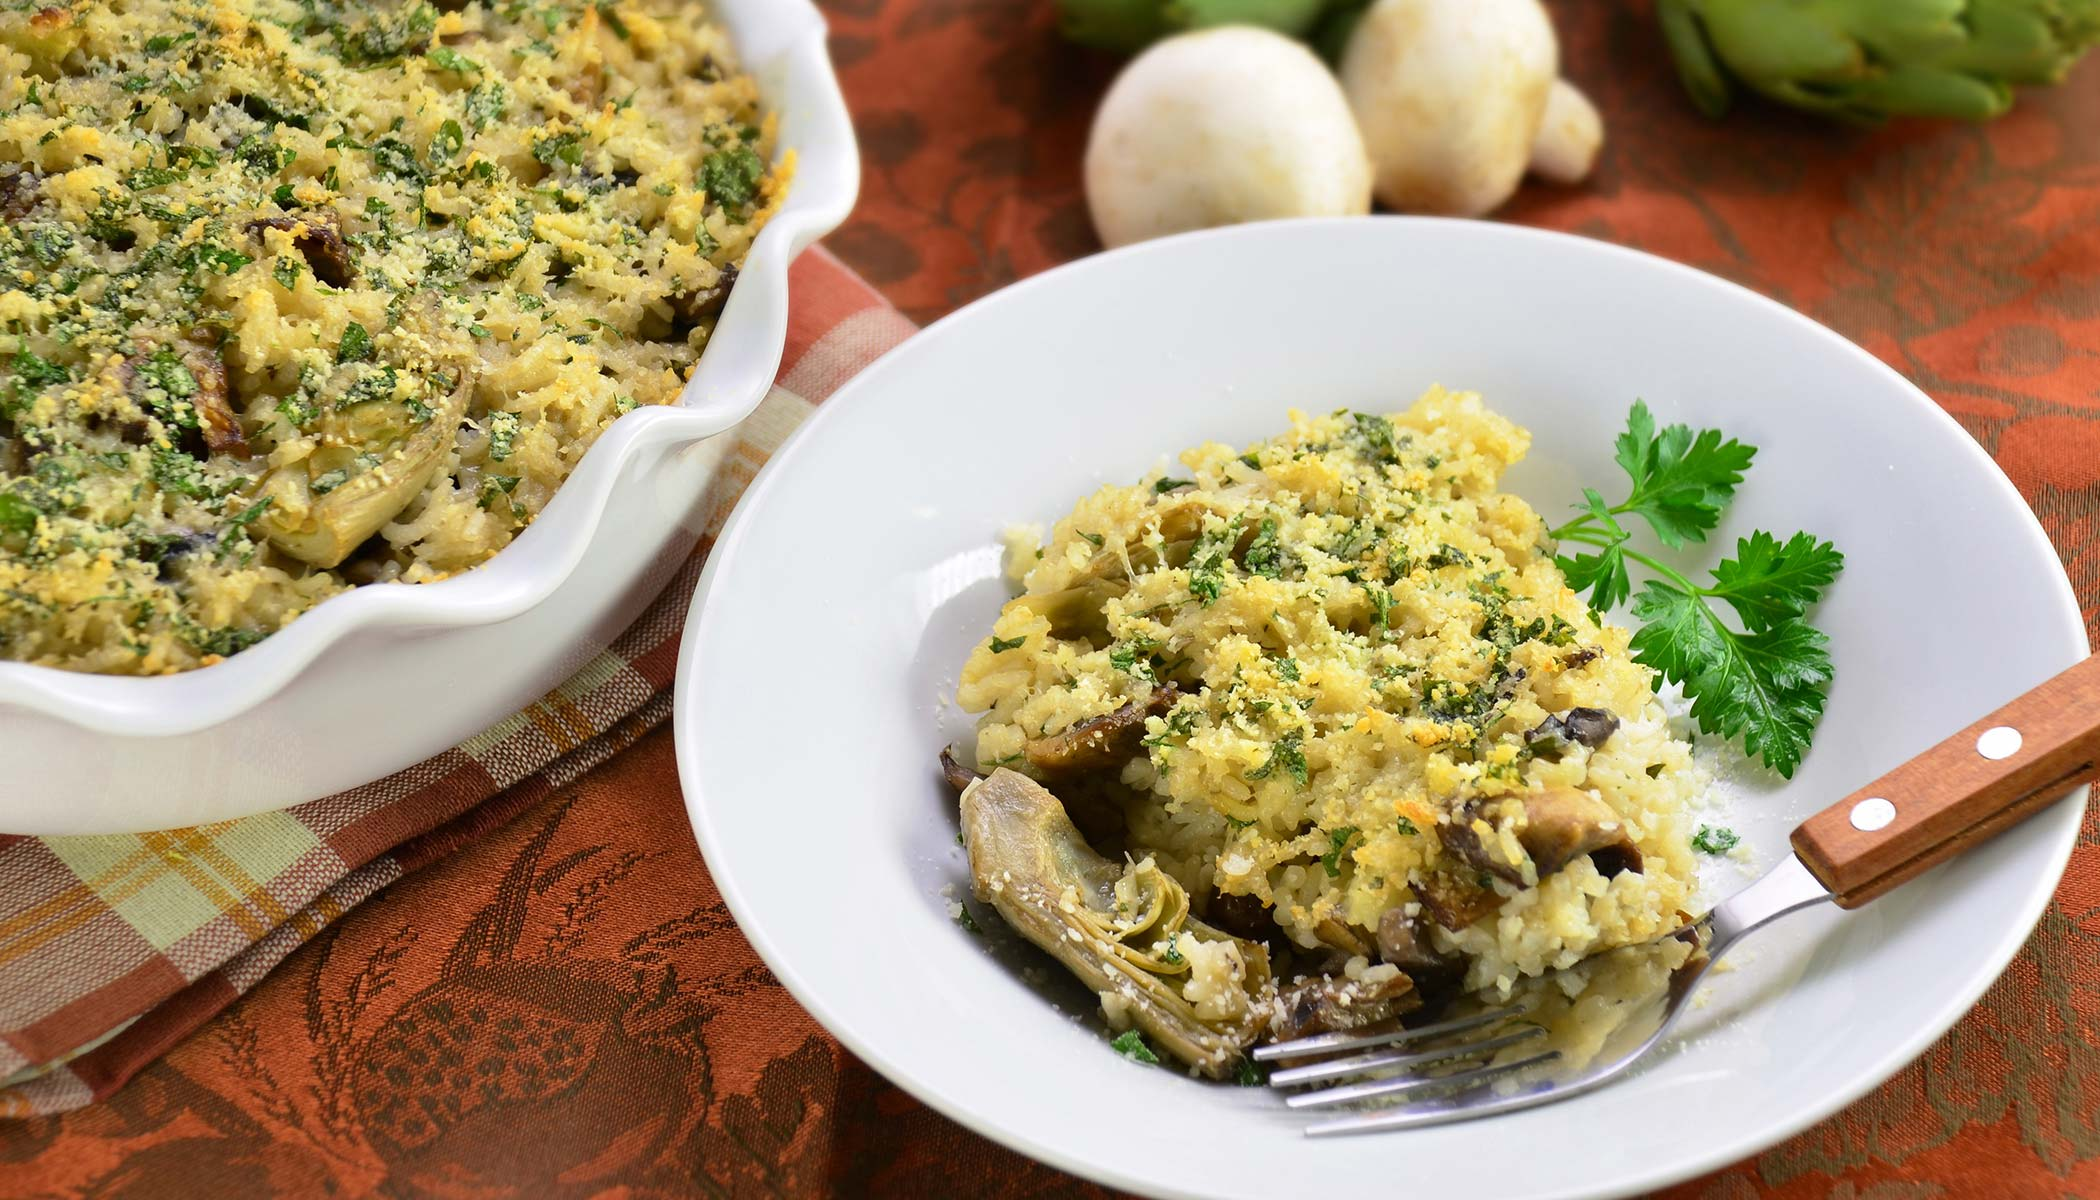 Baked Rice Casserole with Artichokes and Mushrooms